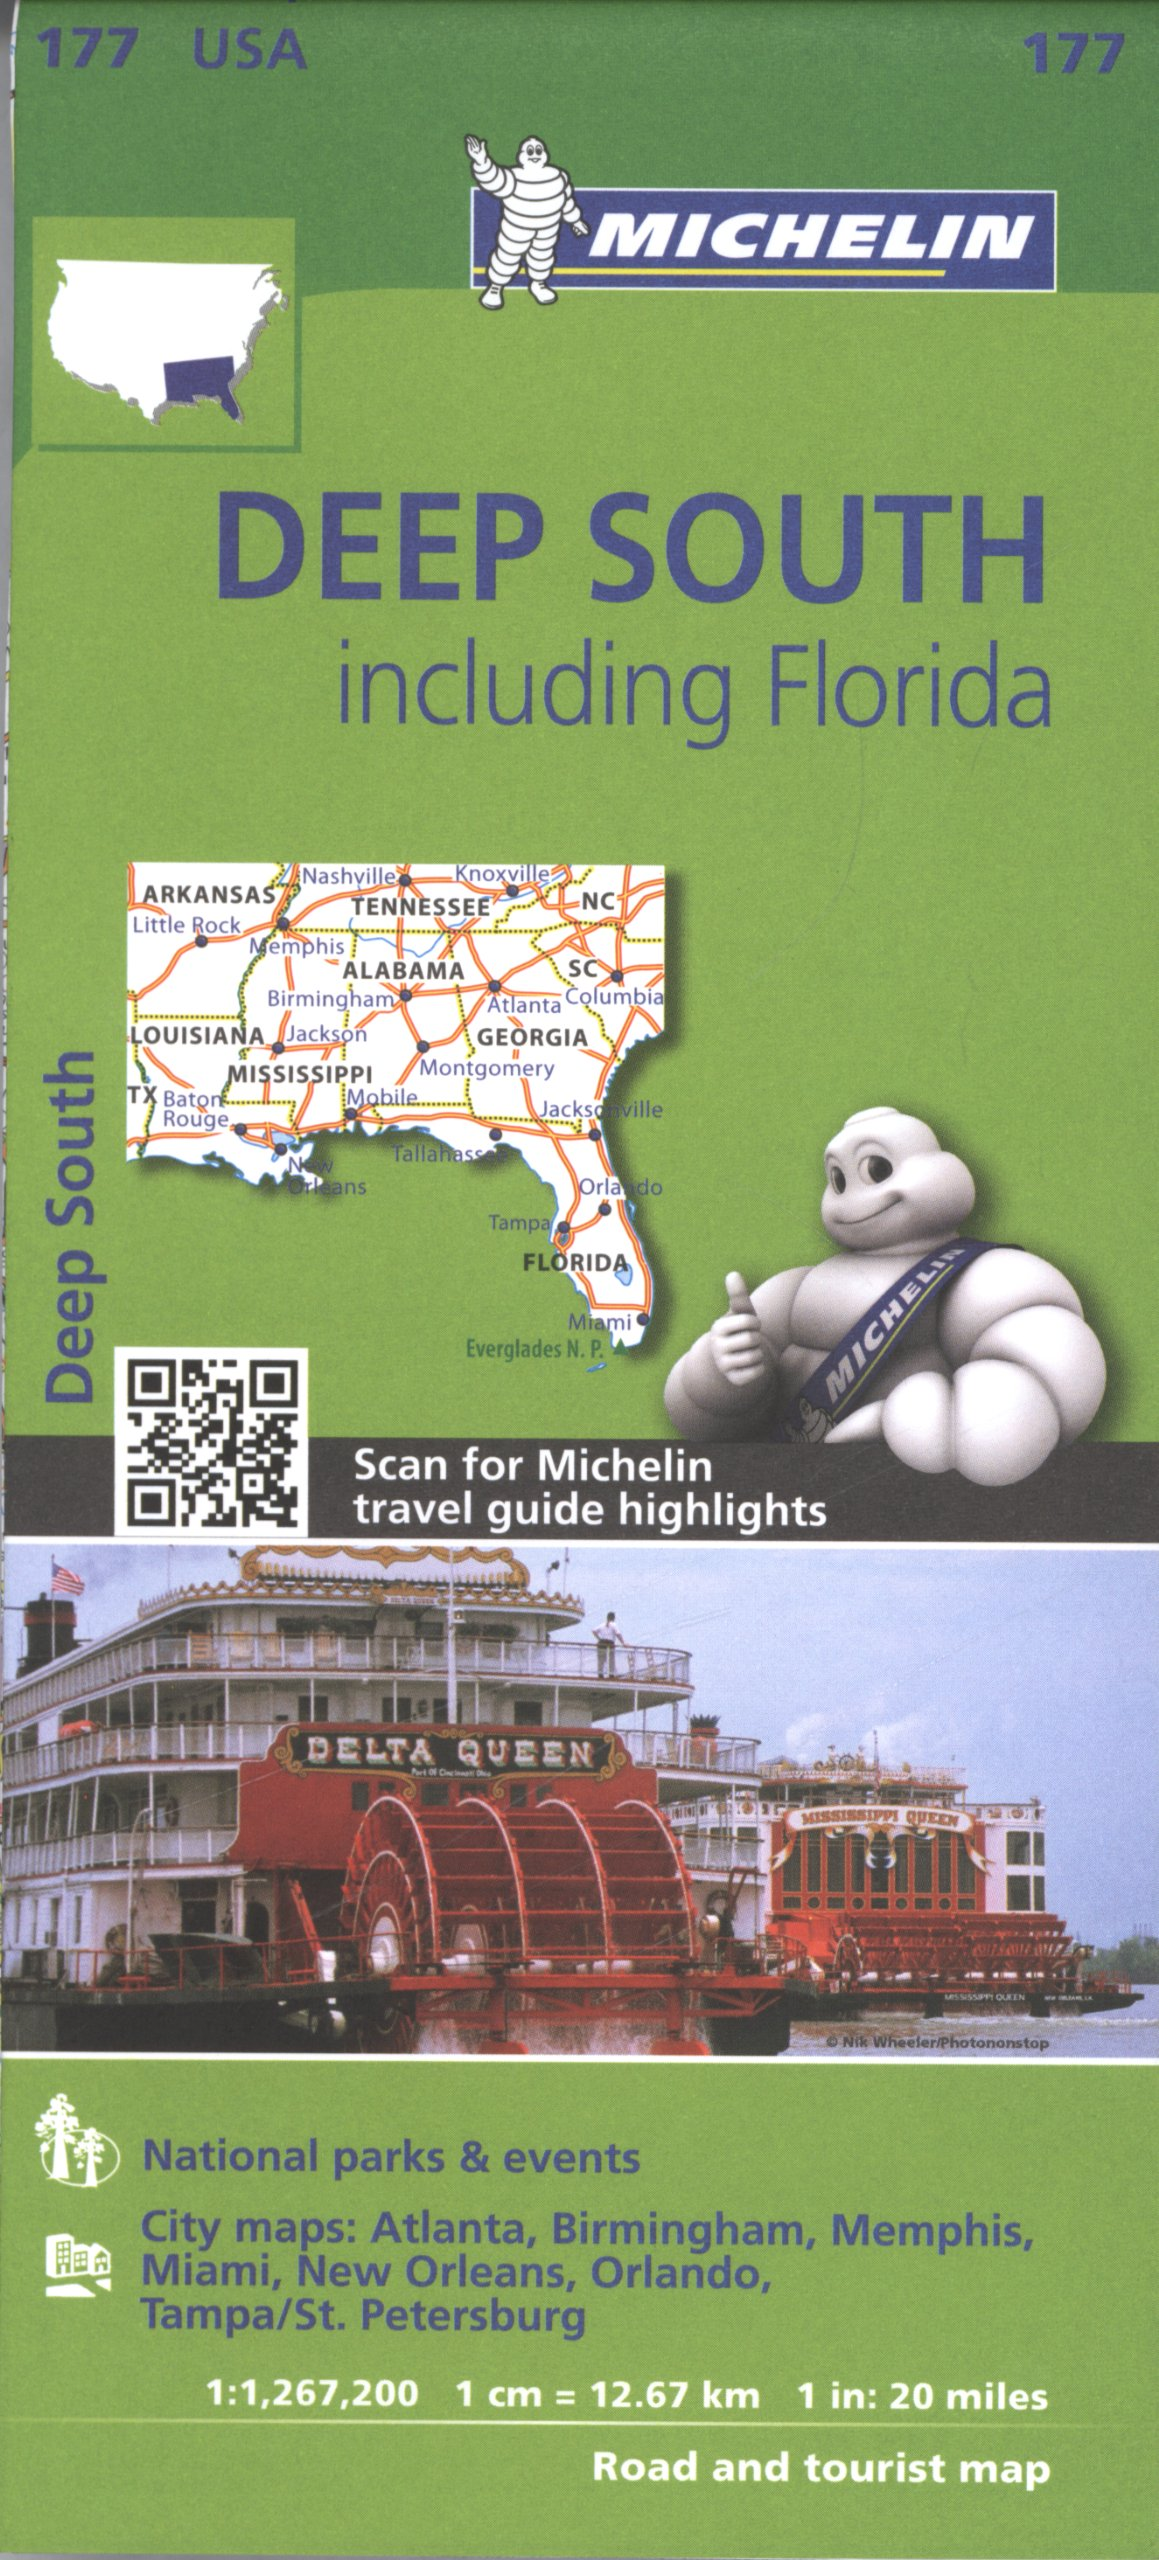 Florida Travel Guide Map.Michelin Usa Deep South Including Florida Map 177 Michelin Zoom Usa